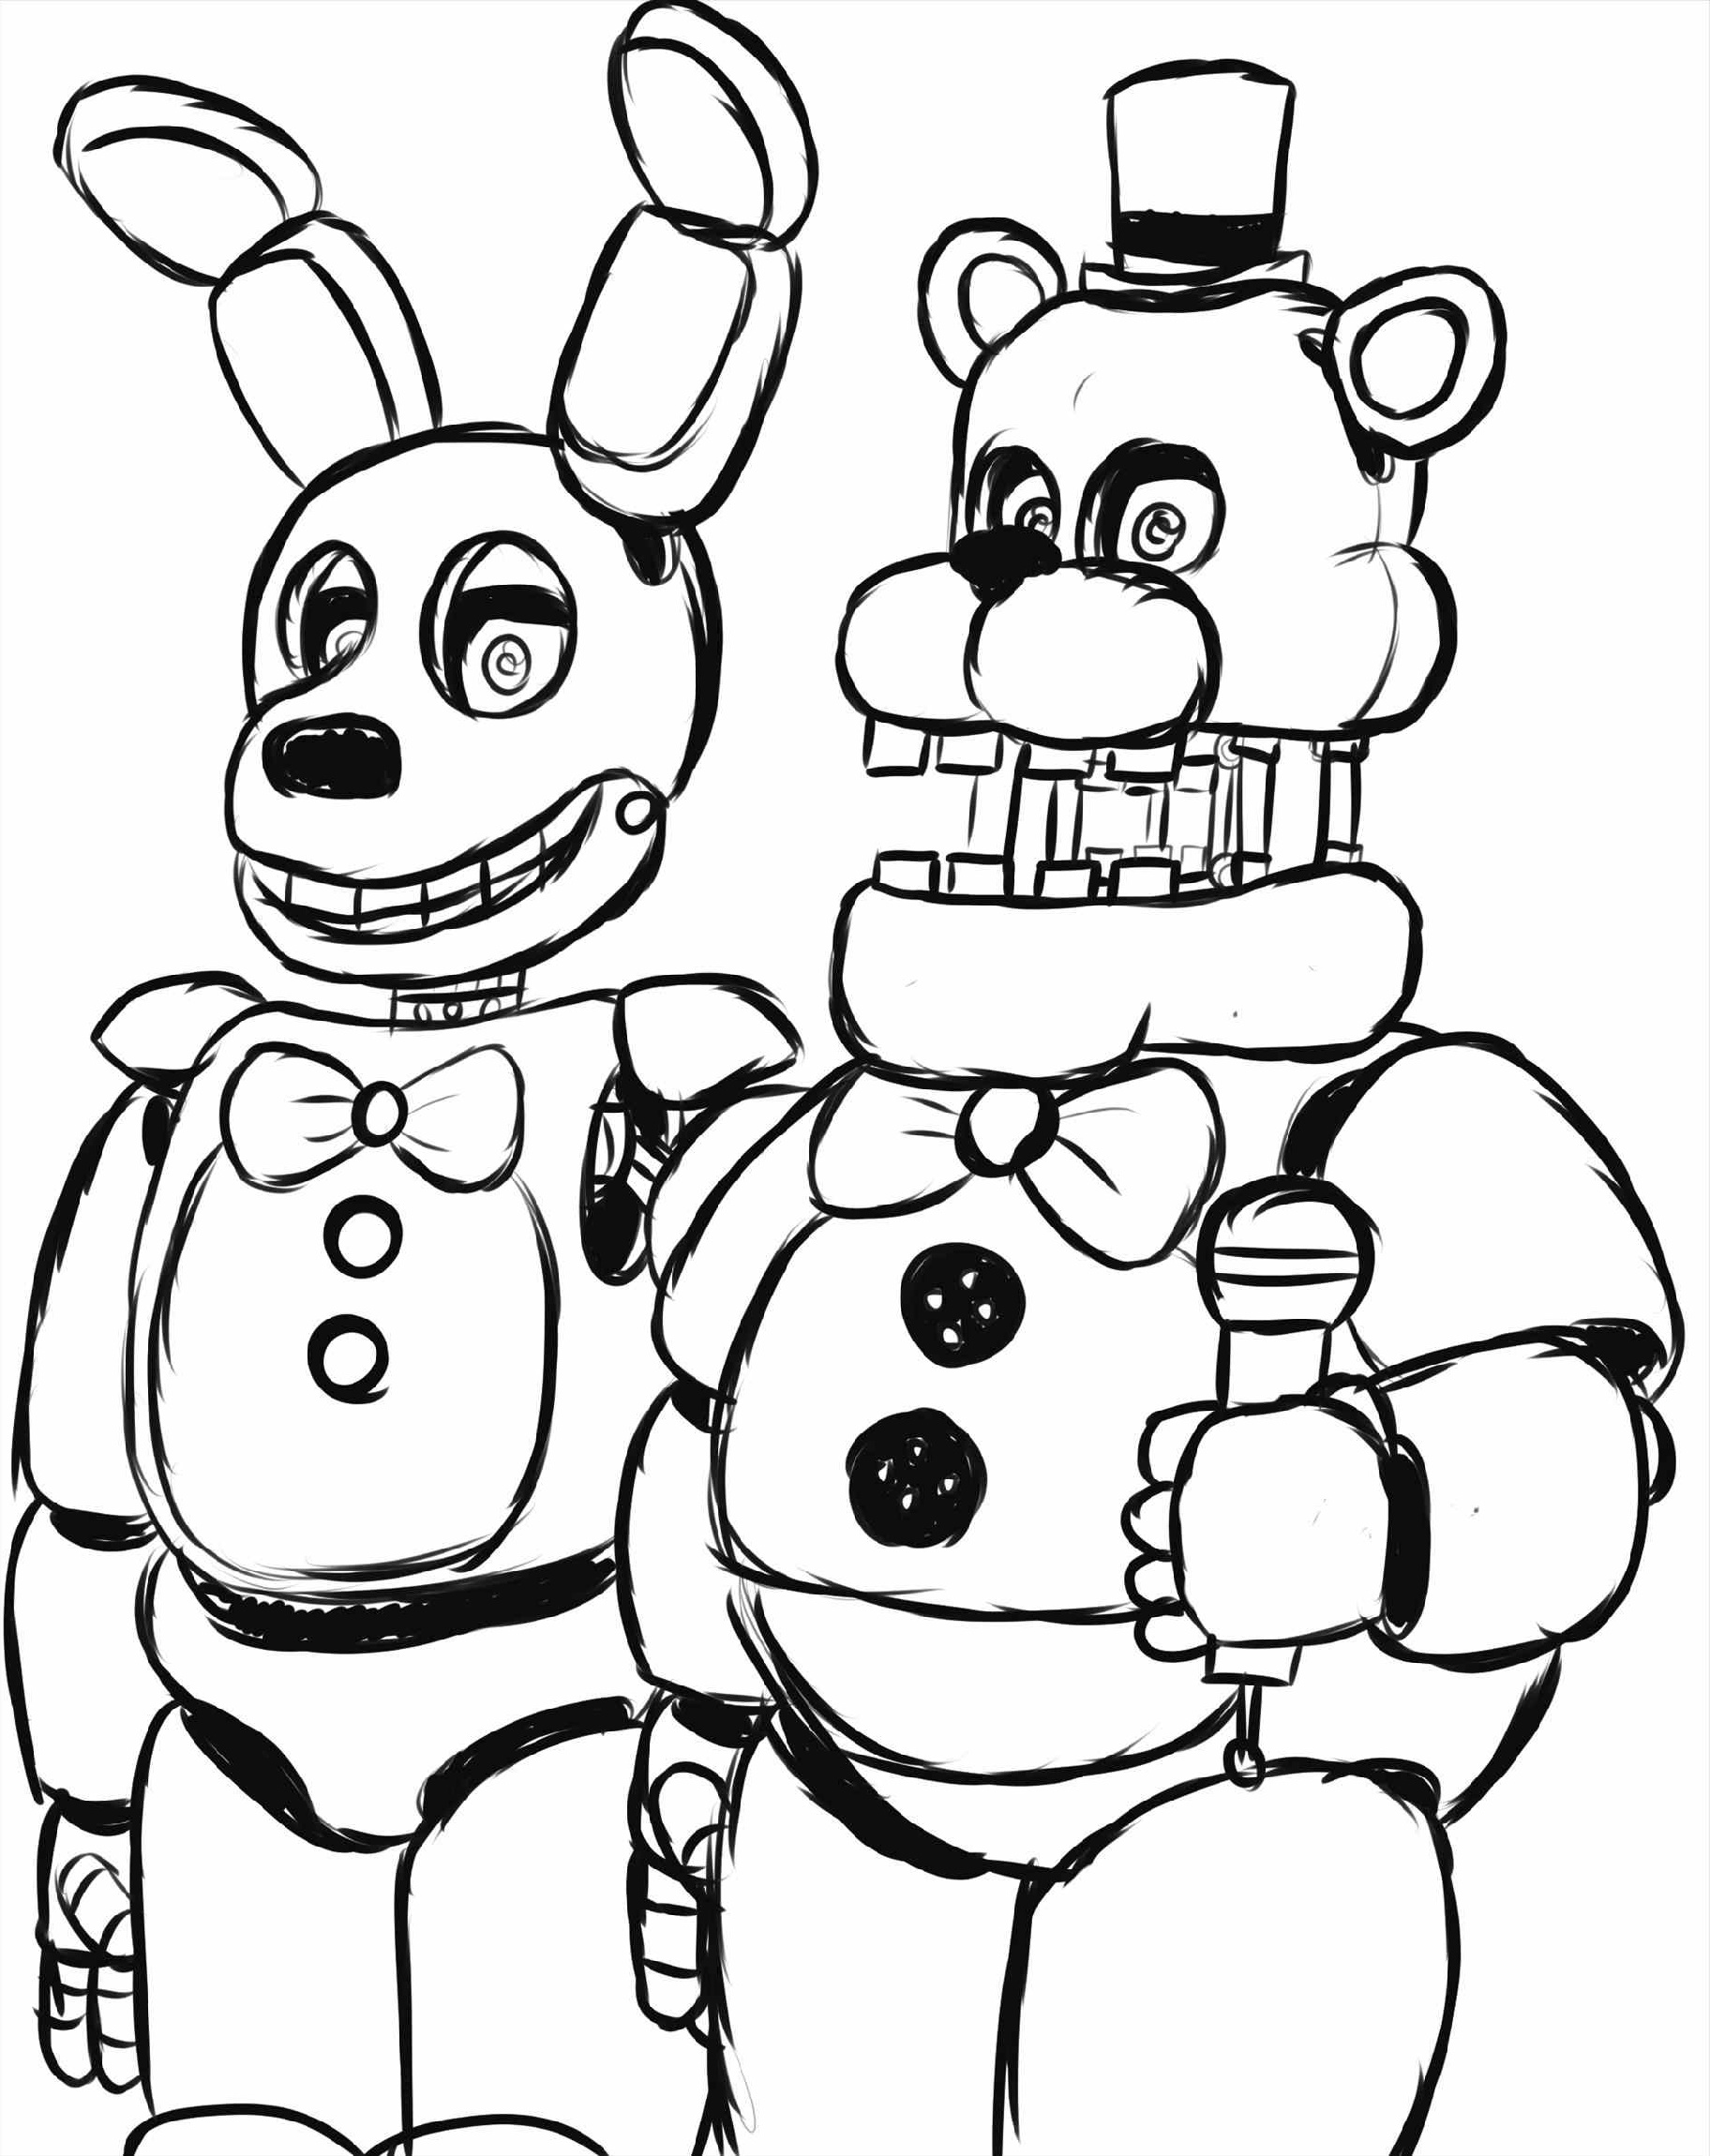 Fnaf-Coloring-Nightmare